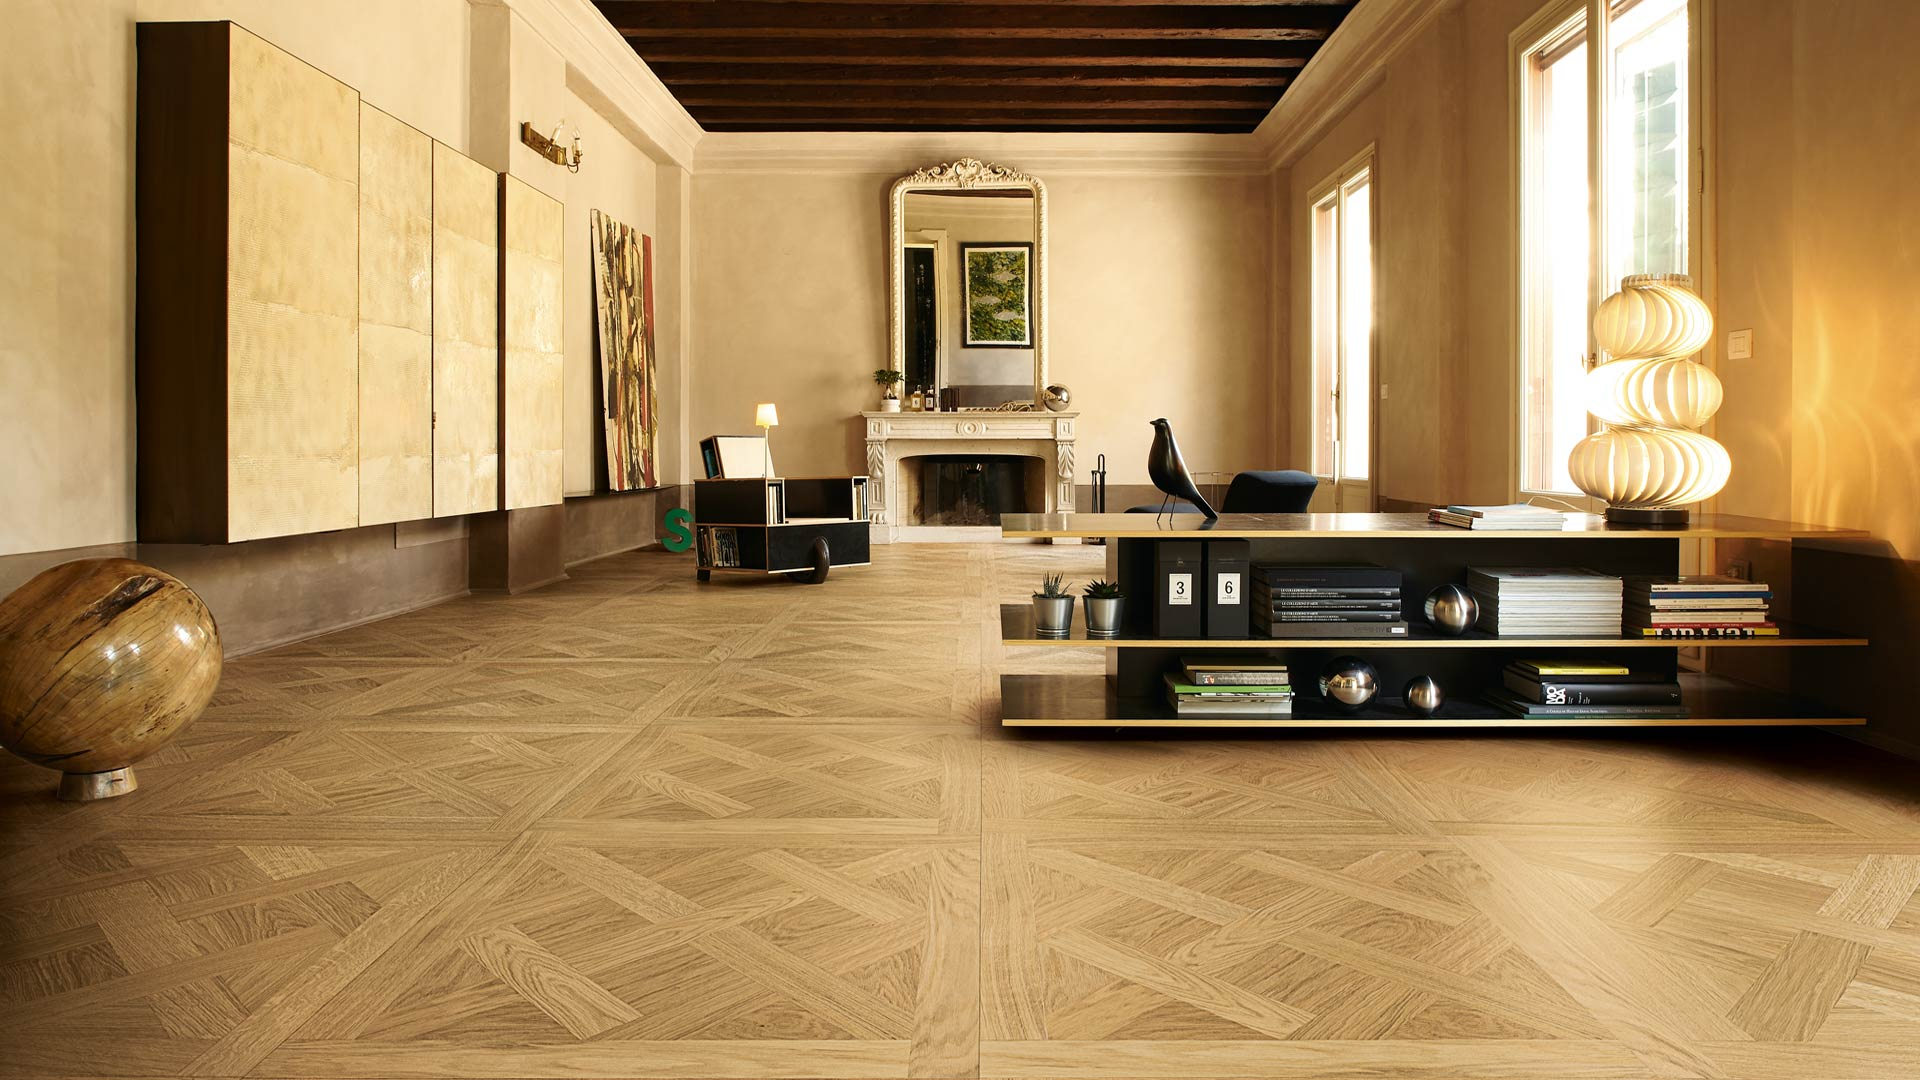 Atelier Déco Versailles - Listone Giordano's Decò collection draws inspiration by the wooden floors that decorate the palaces in central and northern Europe. These tiles give a new twist to a timeless classic and are perfect even for modern residential and non-residential projects.  Even today, processing techniques combined with architects' taste produce superb floor décors.  According to interior design historians, wood panelling floors originated in Italy. It is believed that the Versailles wooden flooring is a more decorative version of Serlio's floor slab. The panels with the lattice arranged diagonally to the frame, were more popular and are still known as Versailles parquet flooring. In contrast those with the lattice parallel to the edge are called Chantilly parquet.  | Matter of Stuff